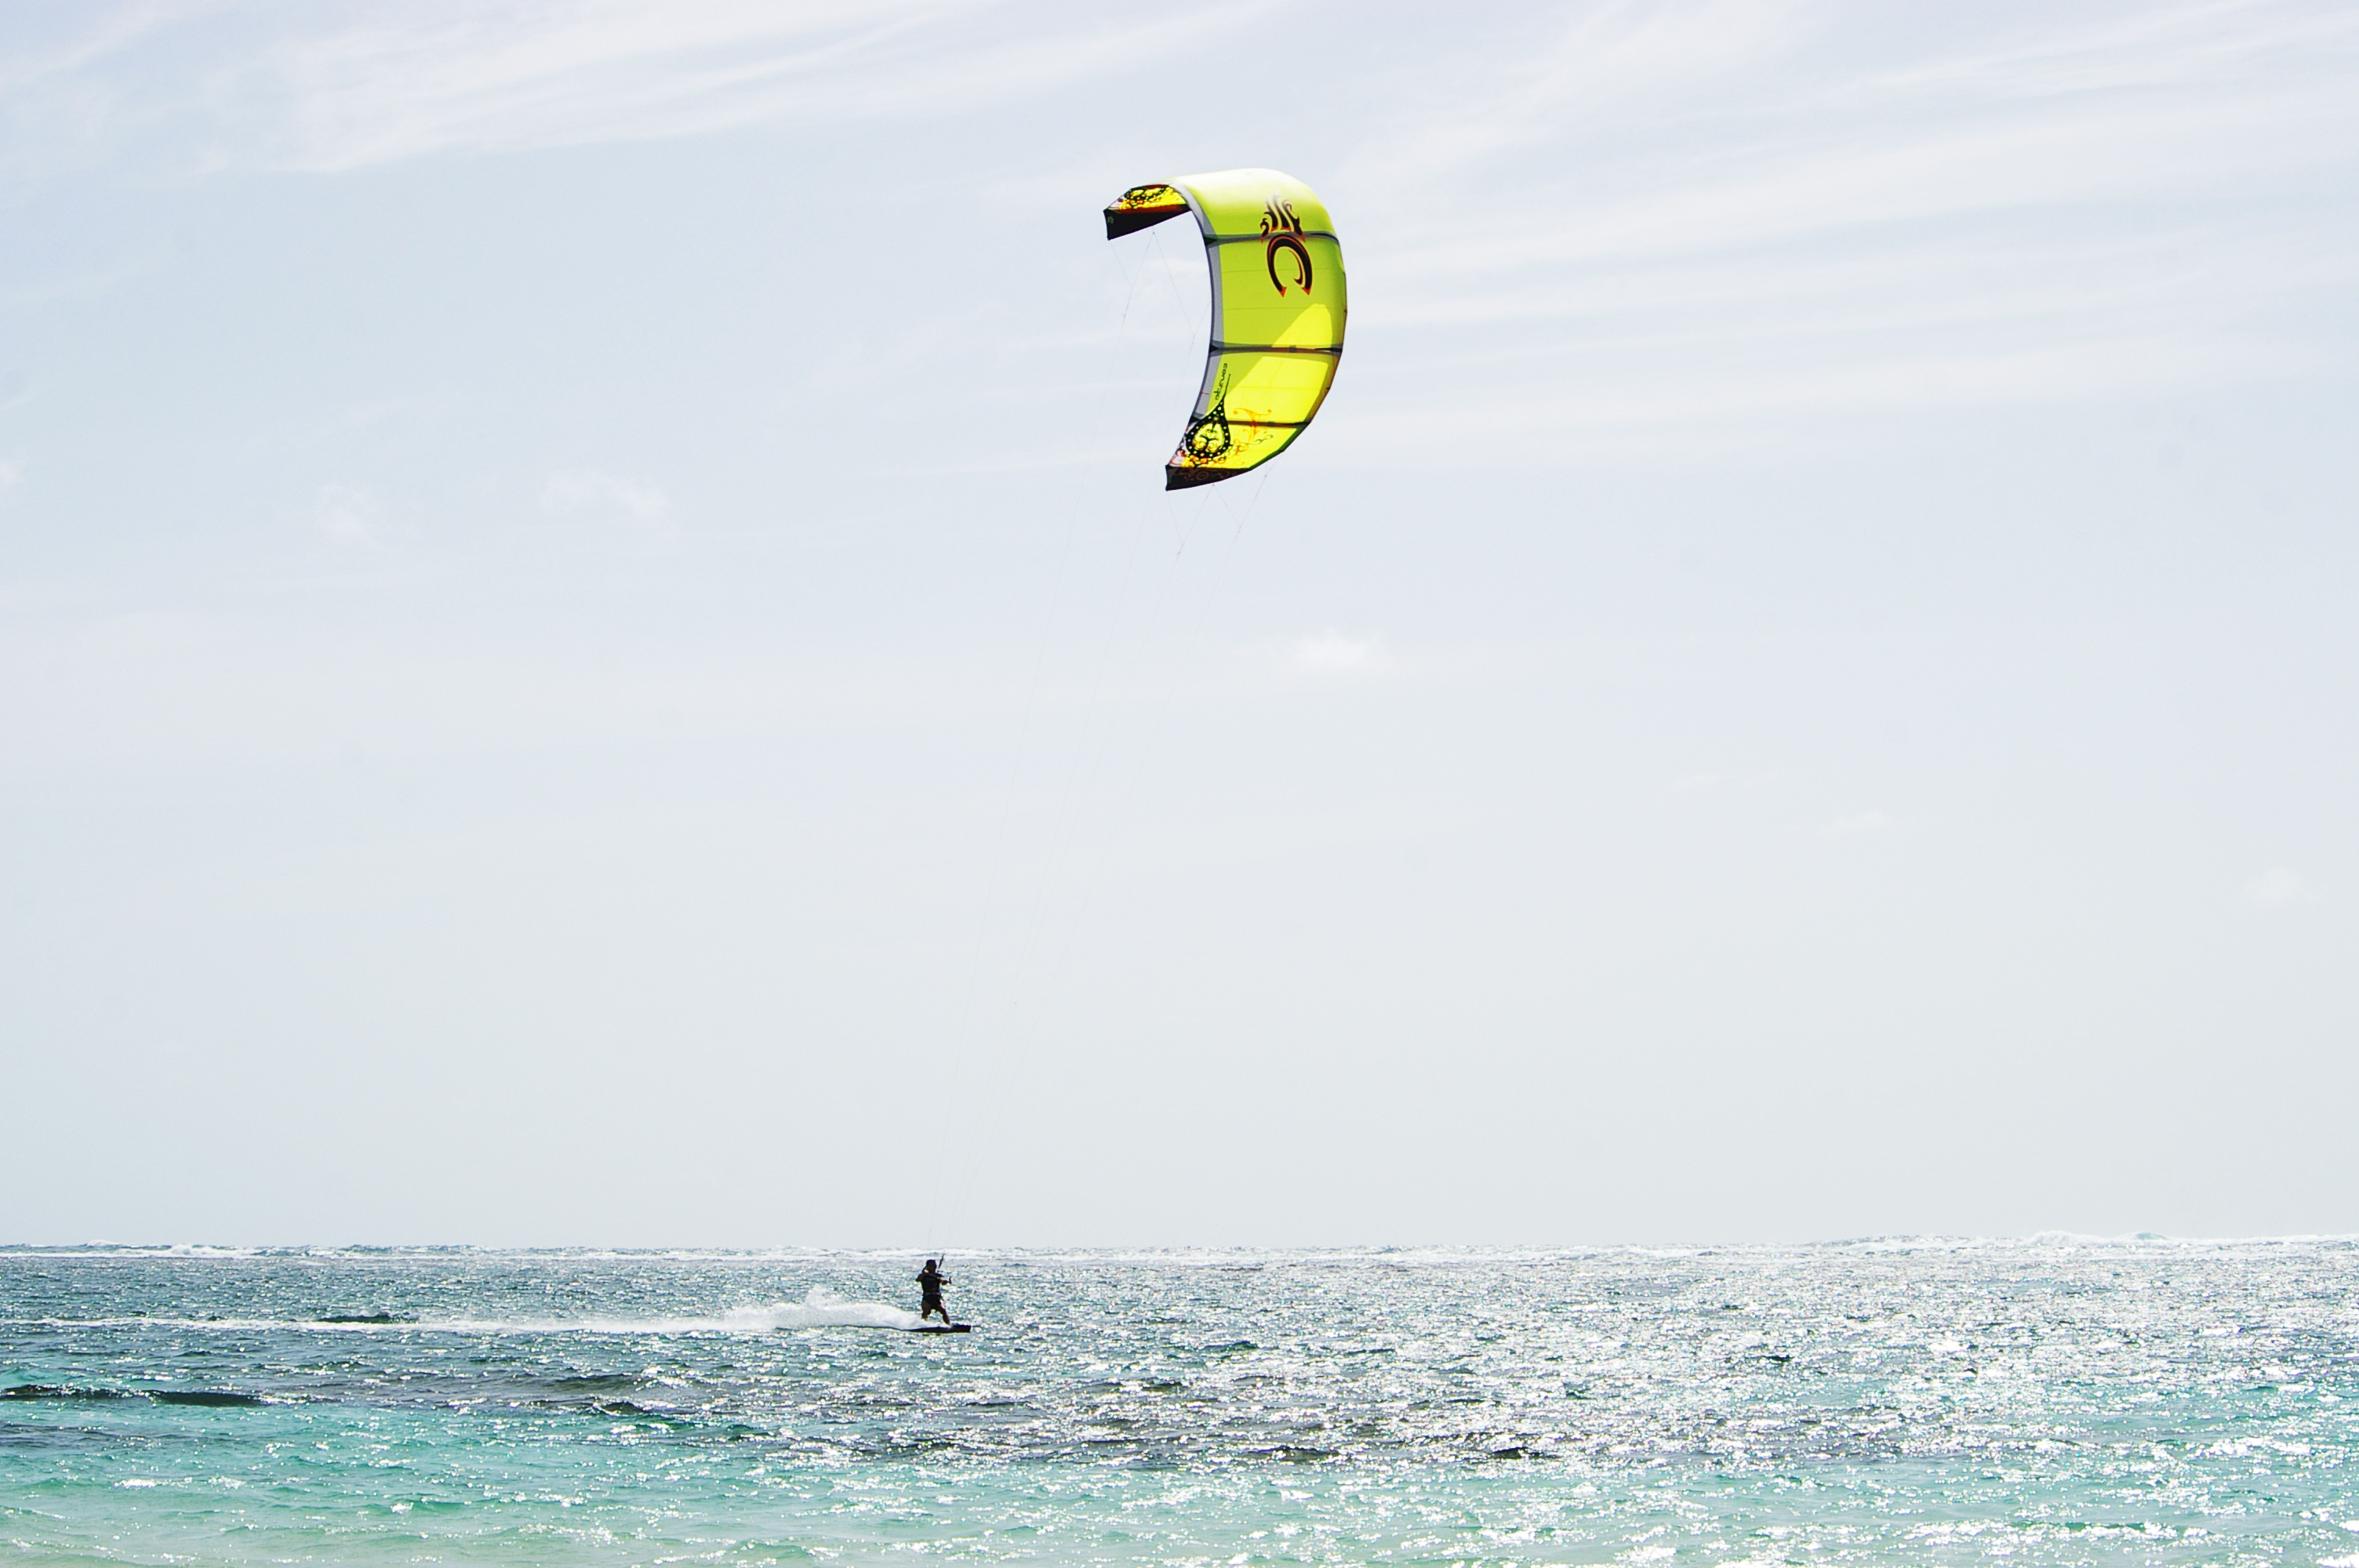 Kite boarding, Activity, Solo, Water, Vent, HQ Photo